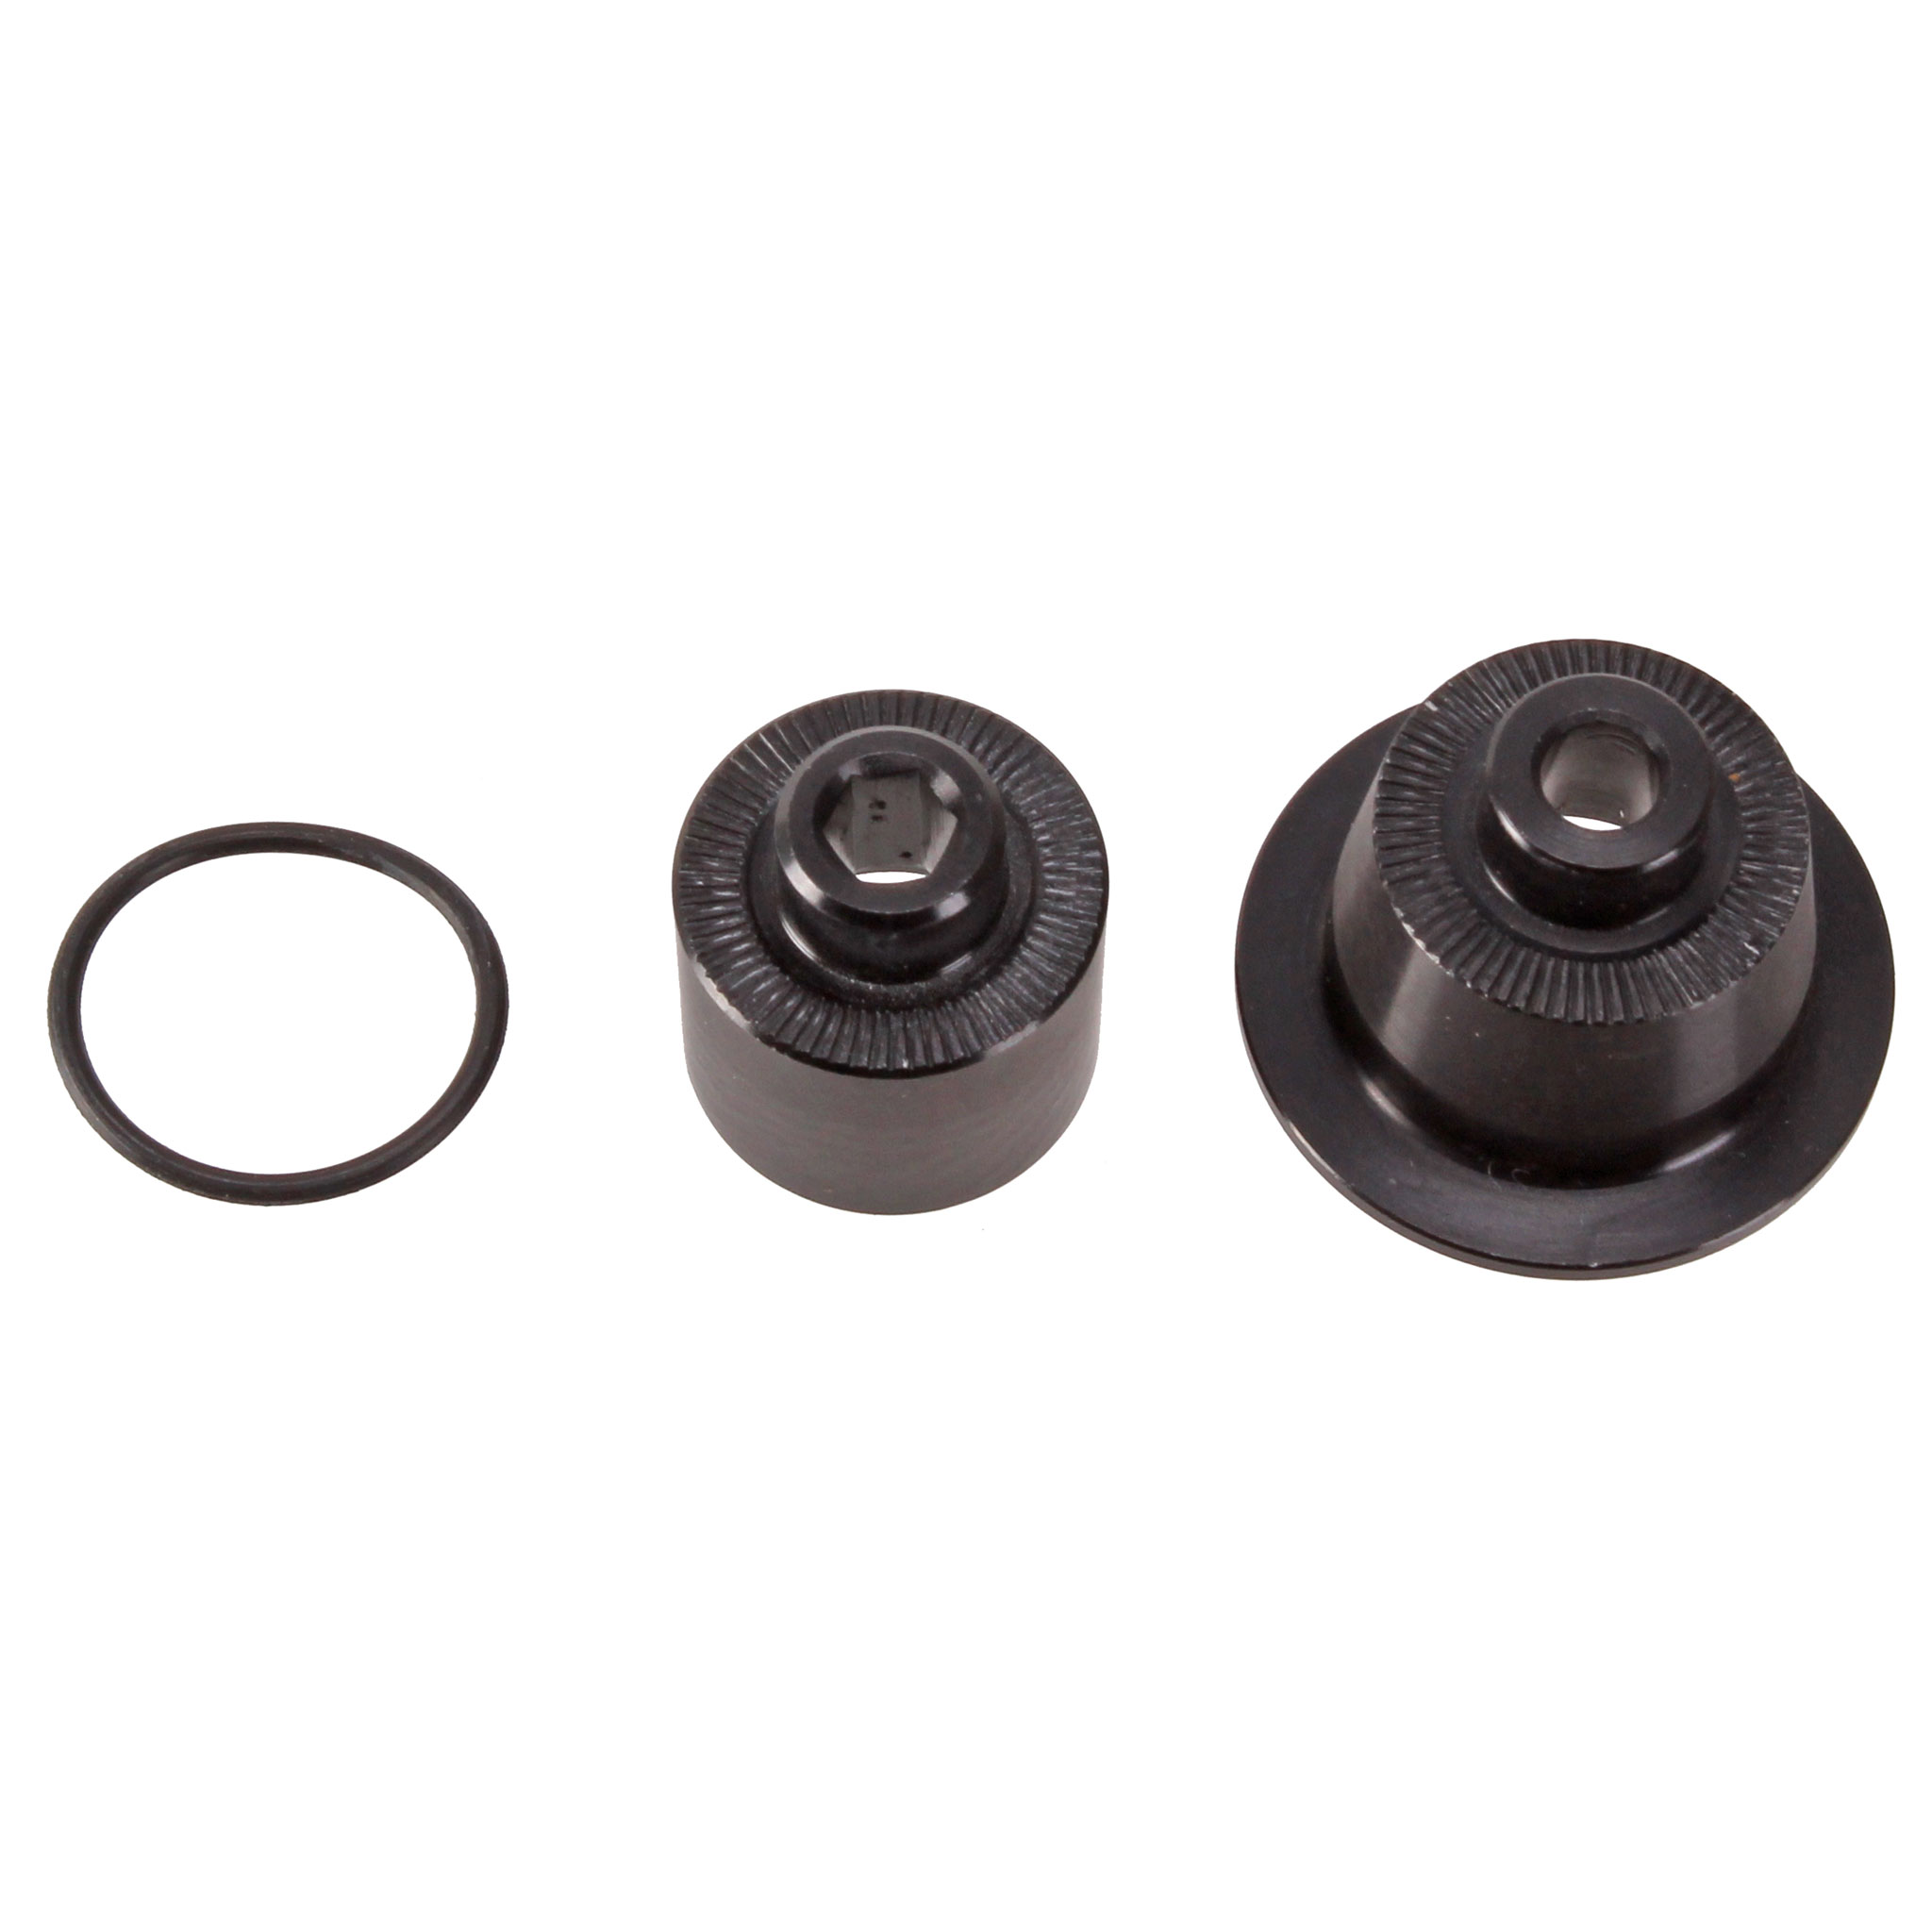 Bicycle Hub Caps : Sunringle src srx rear hub mm qr end cap kit black